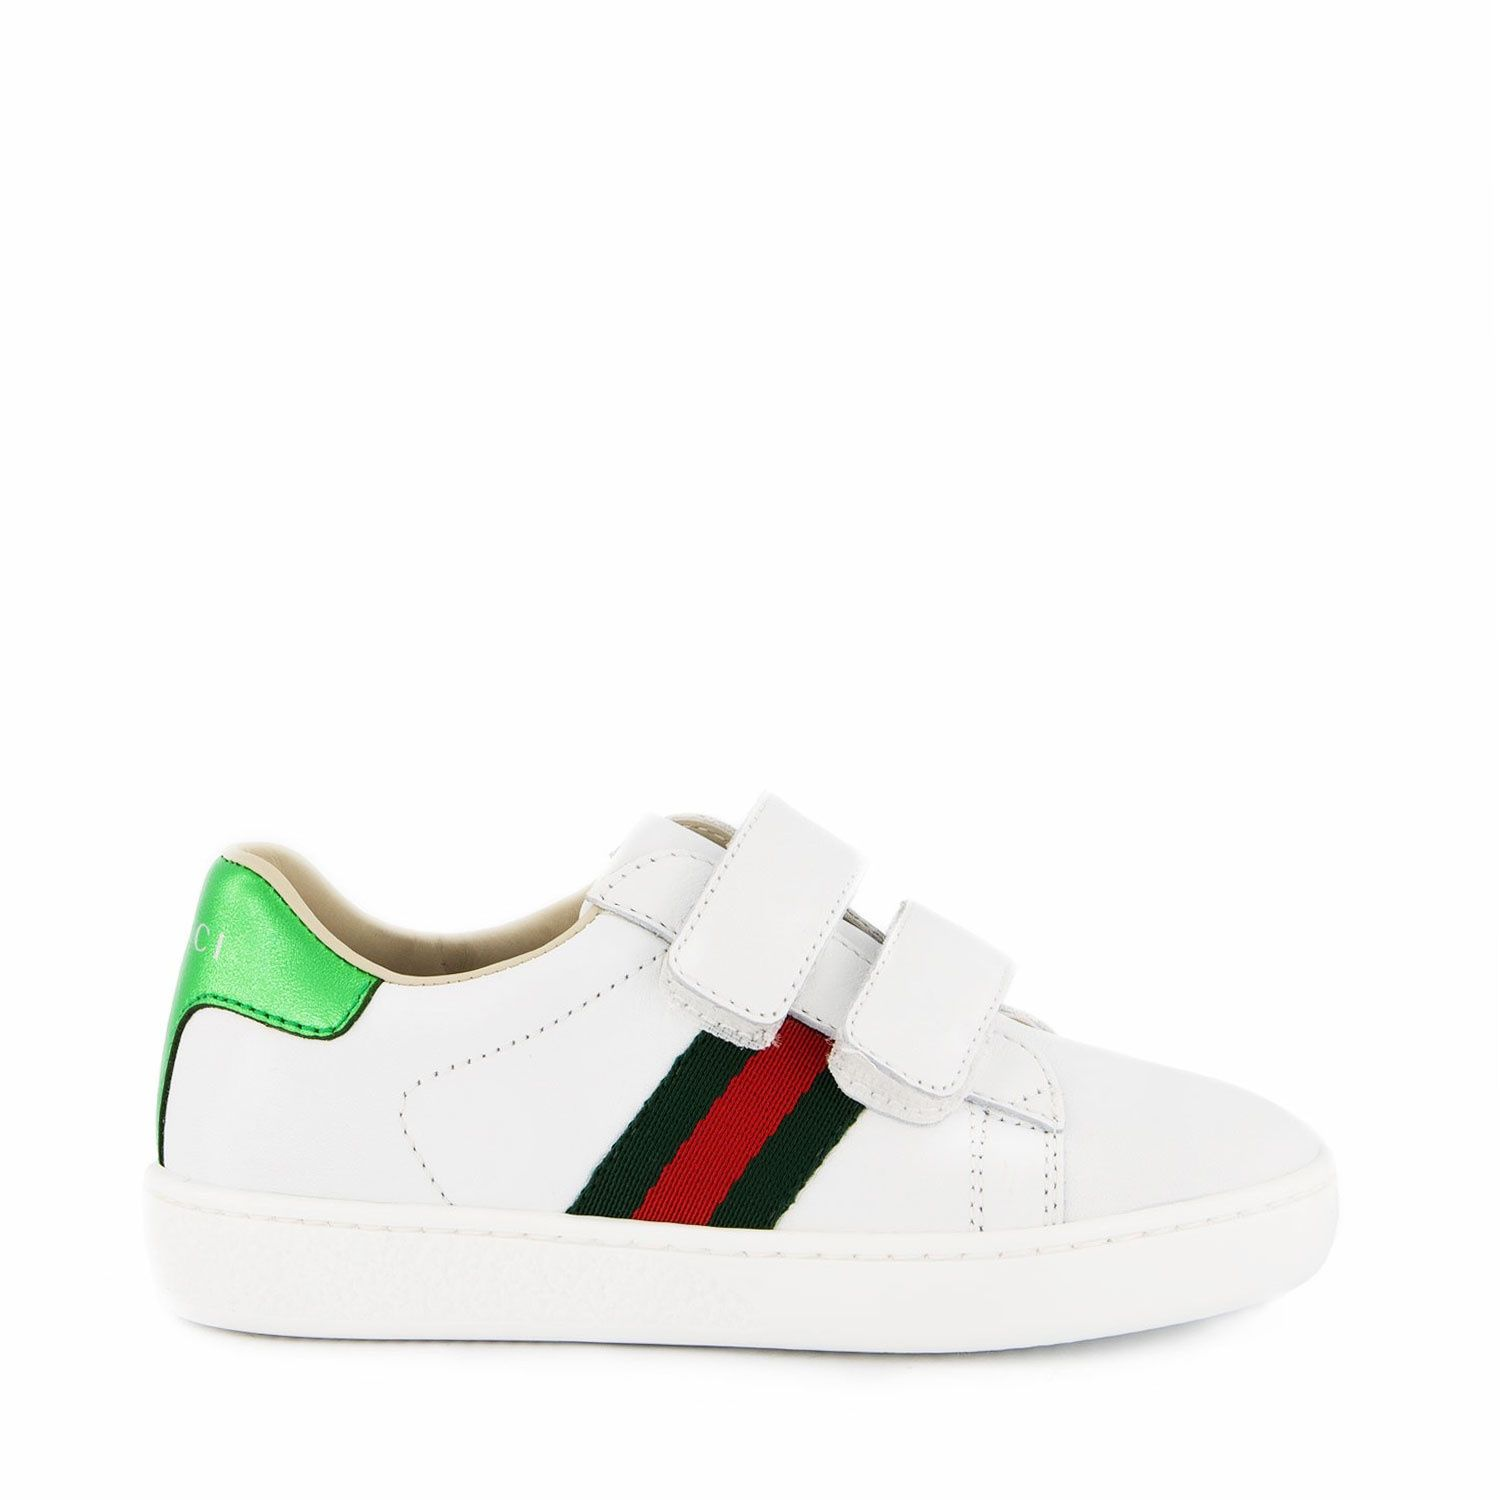 Picture of Gucci 455447 CPWP0 kids sneakers white